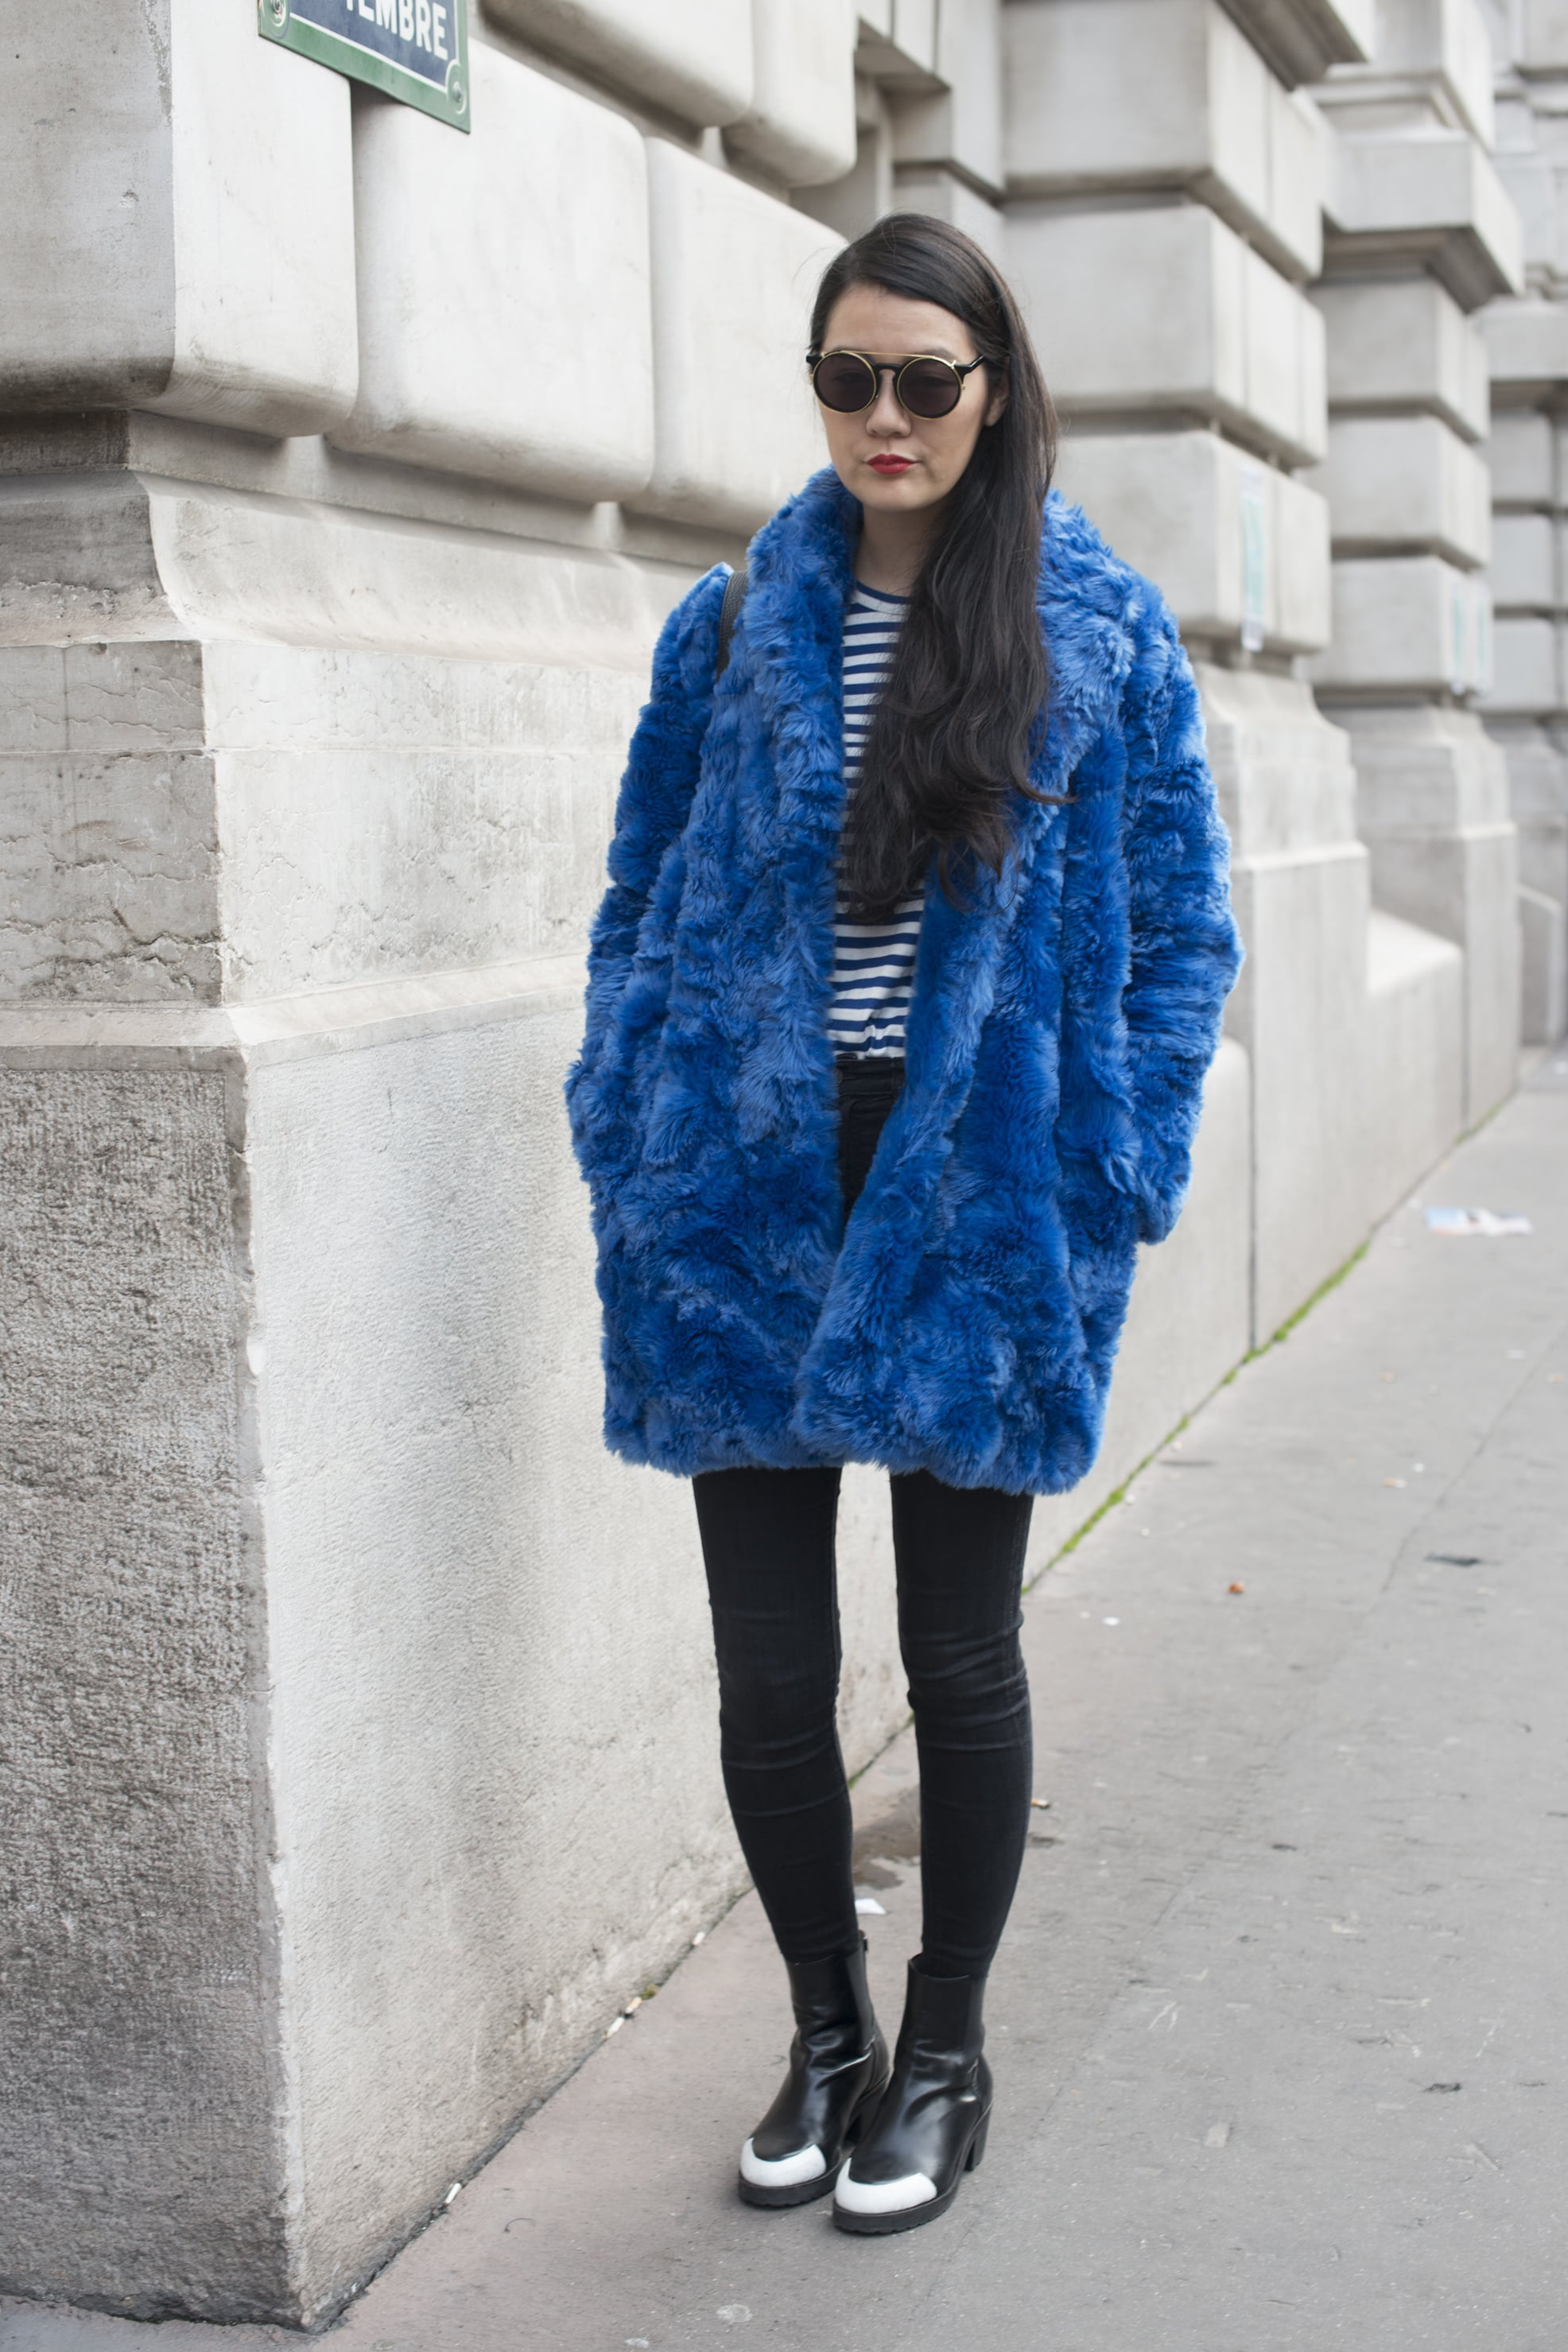 Kook meets classic when Breton stripes and a furry blue coat collide.